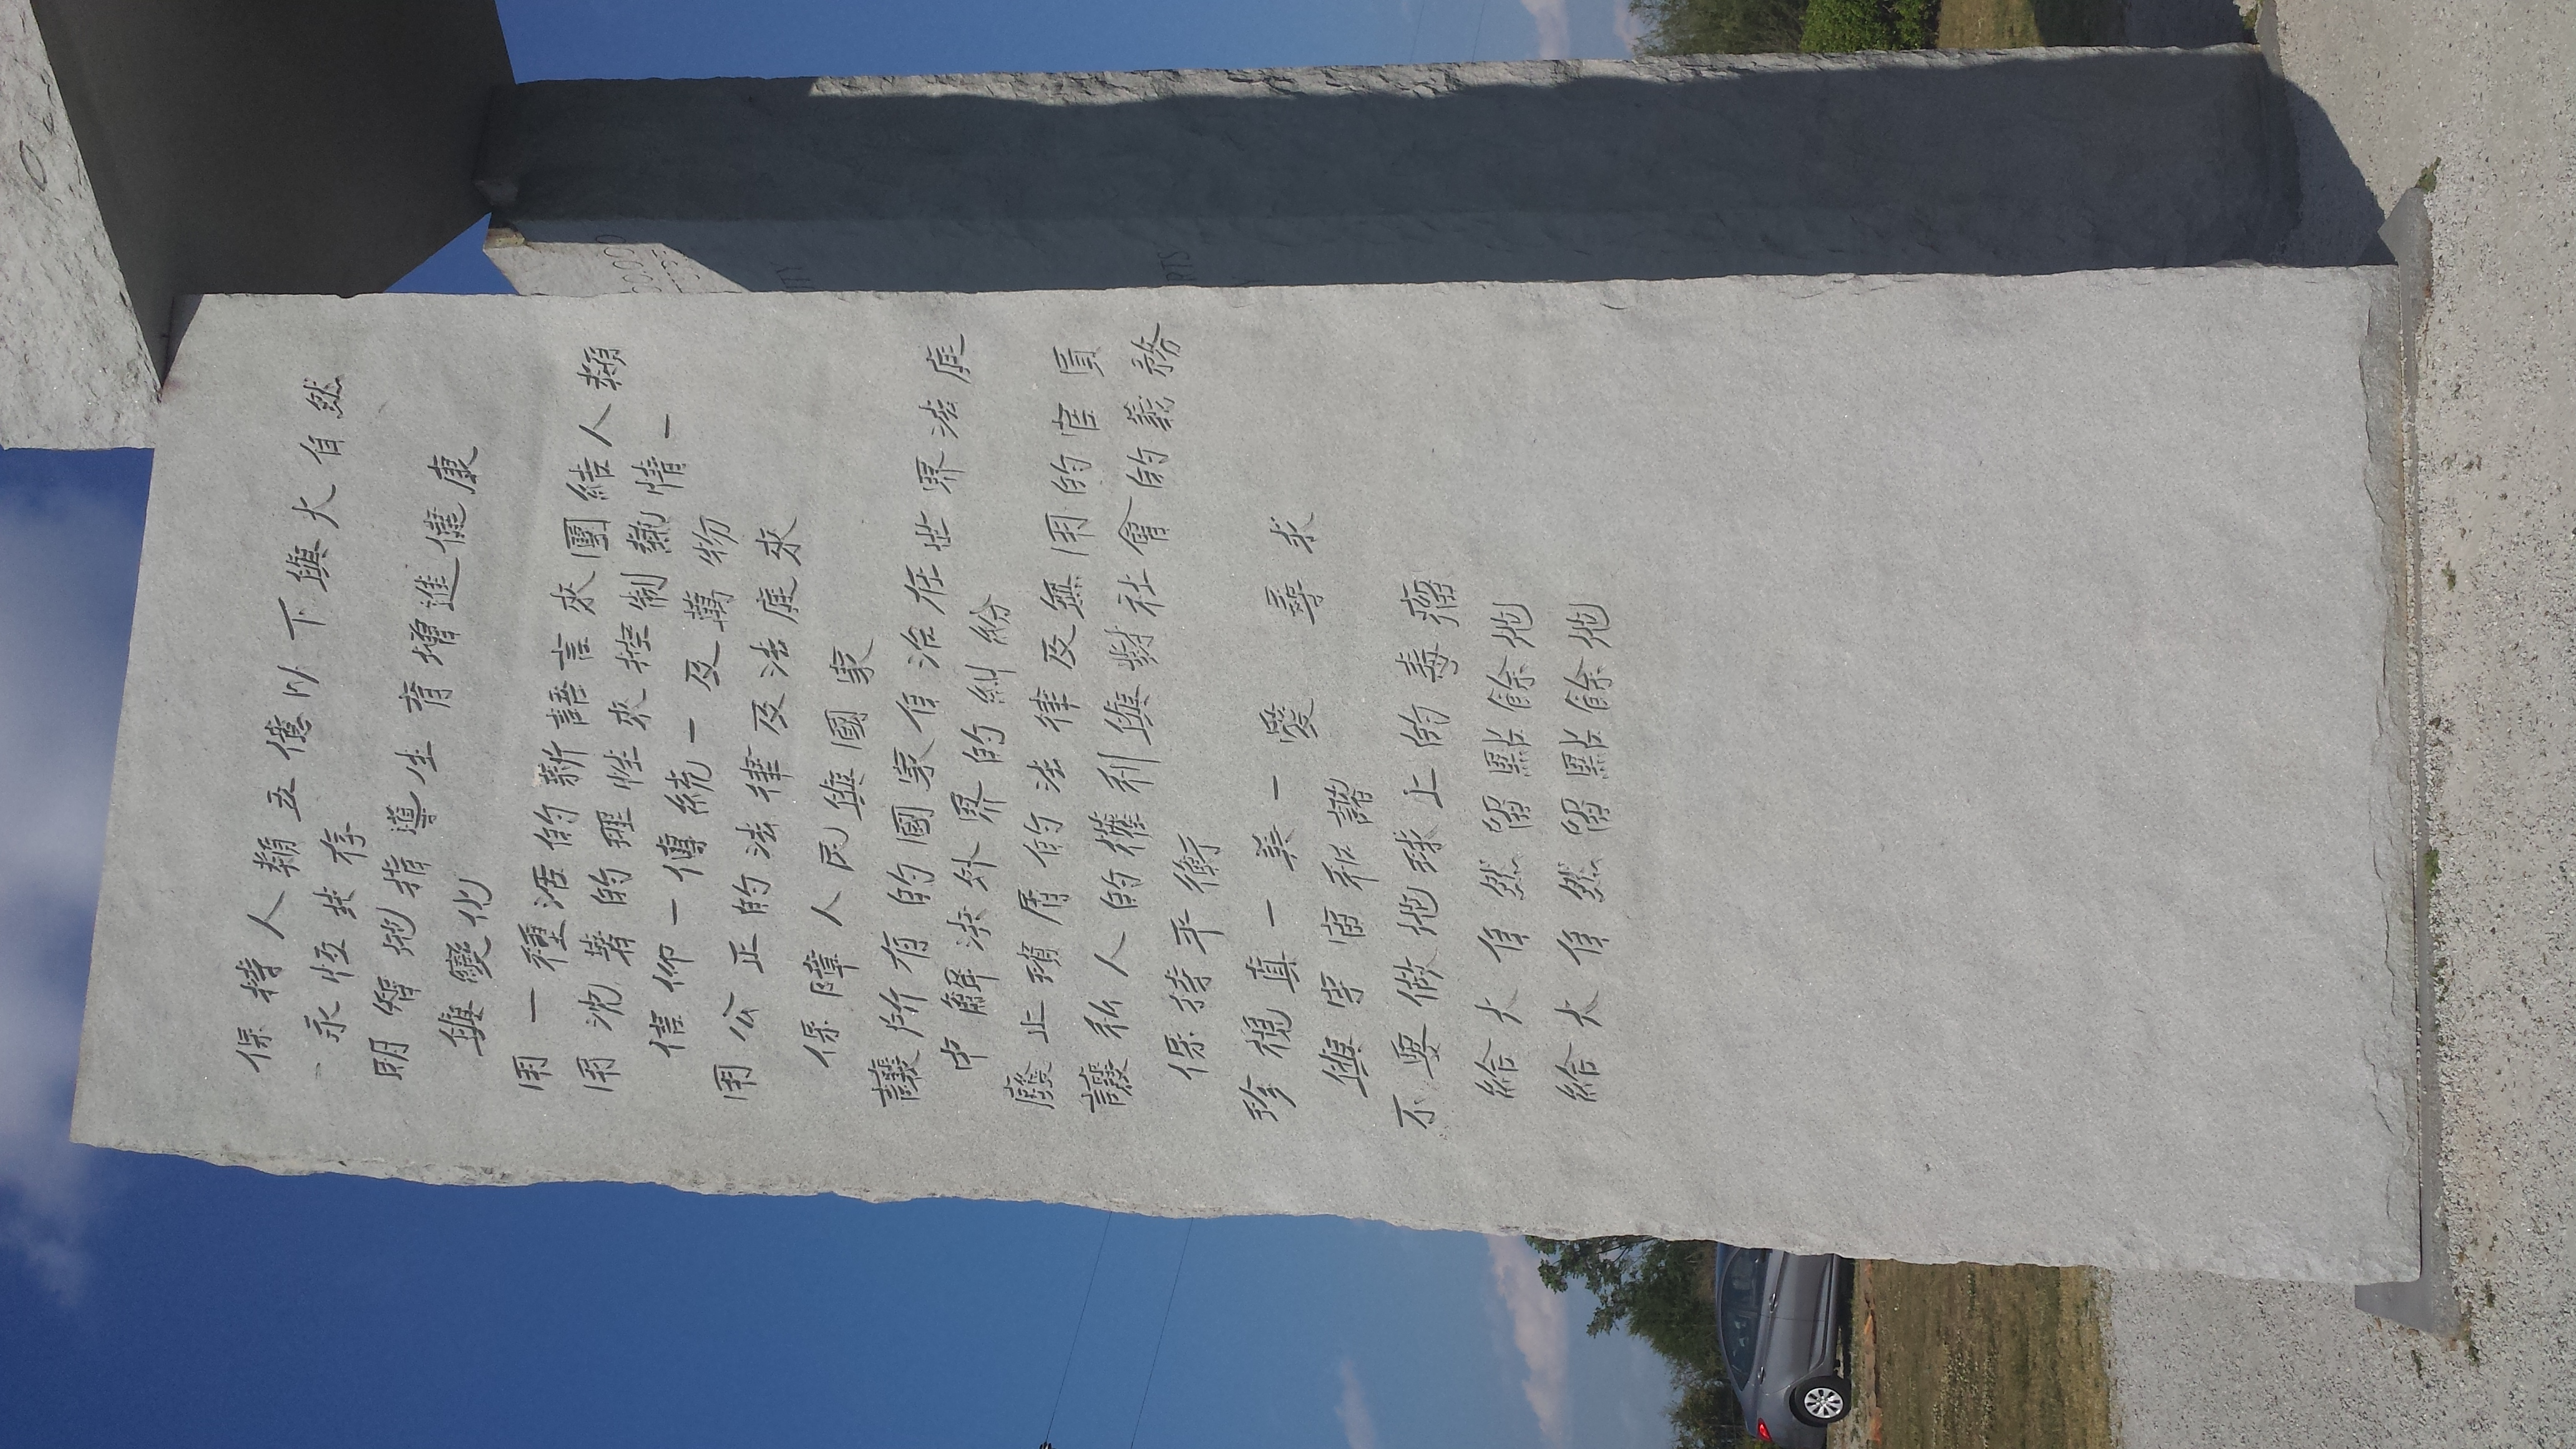 What Are The Georgia Guidestones Pictures And Facts